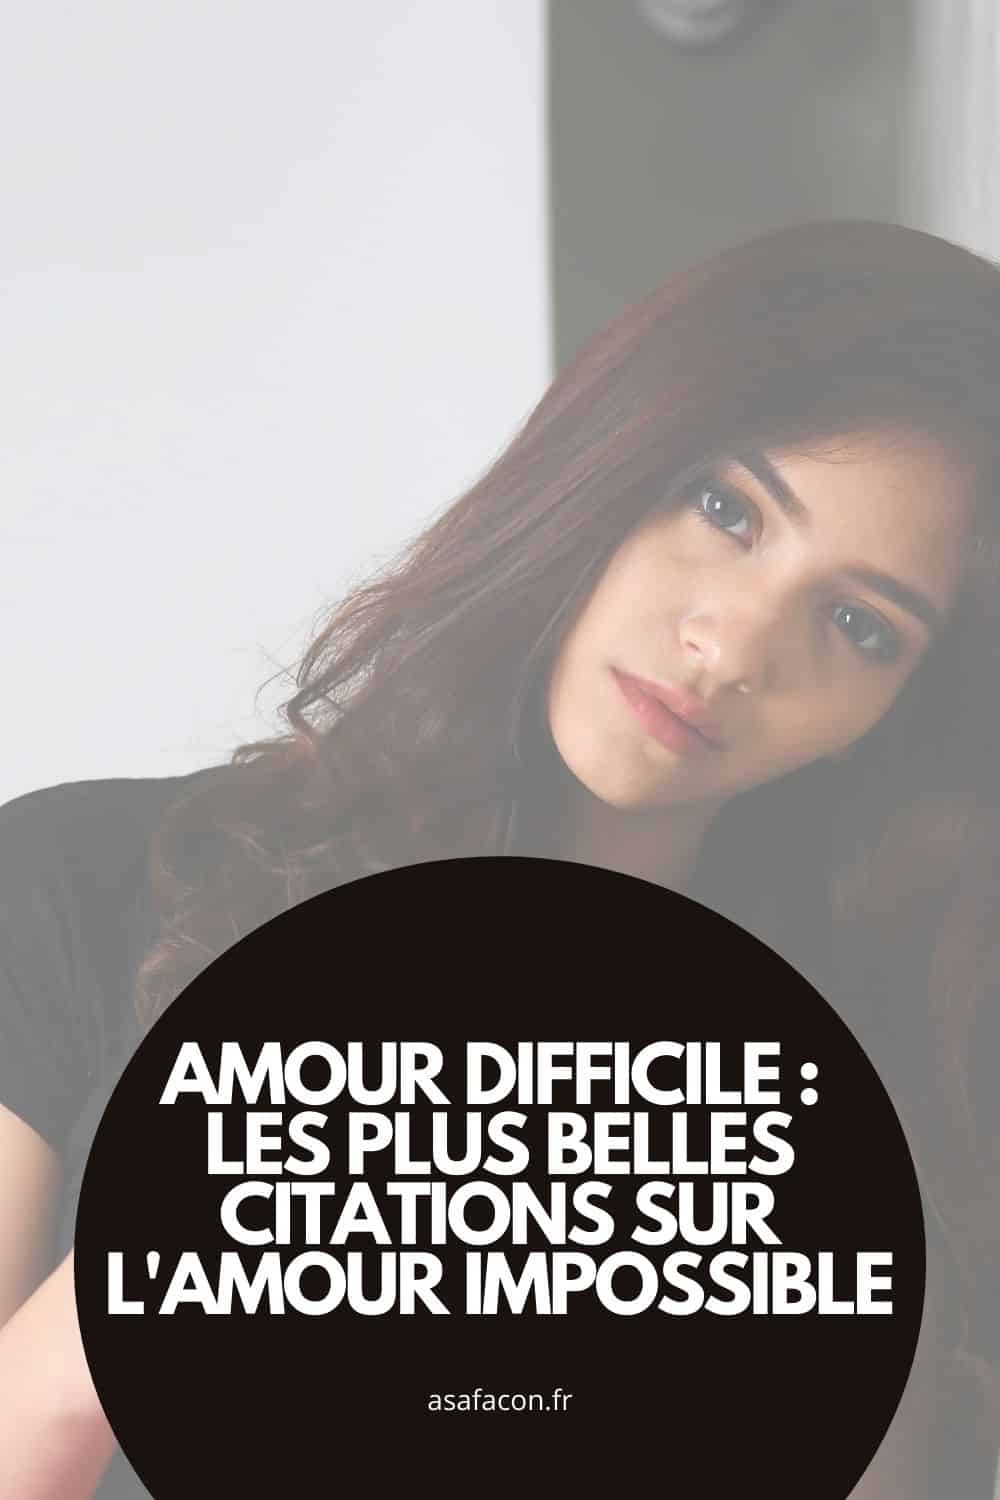 Amour Difficile Les Plus Belles Citations Sur L'amour Impossible